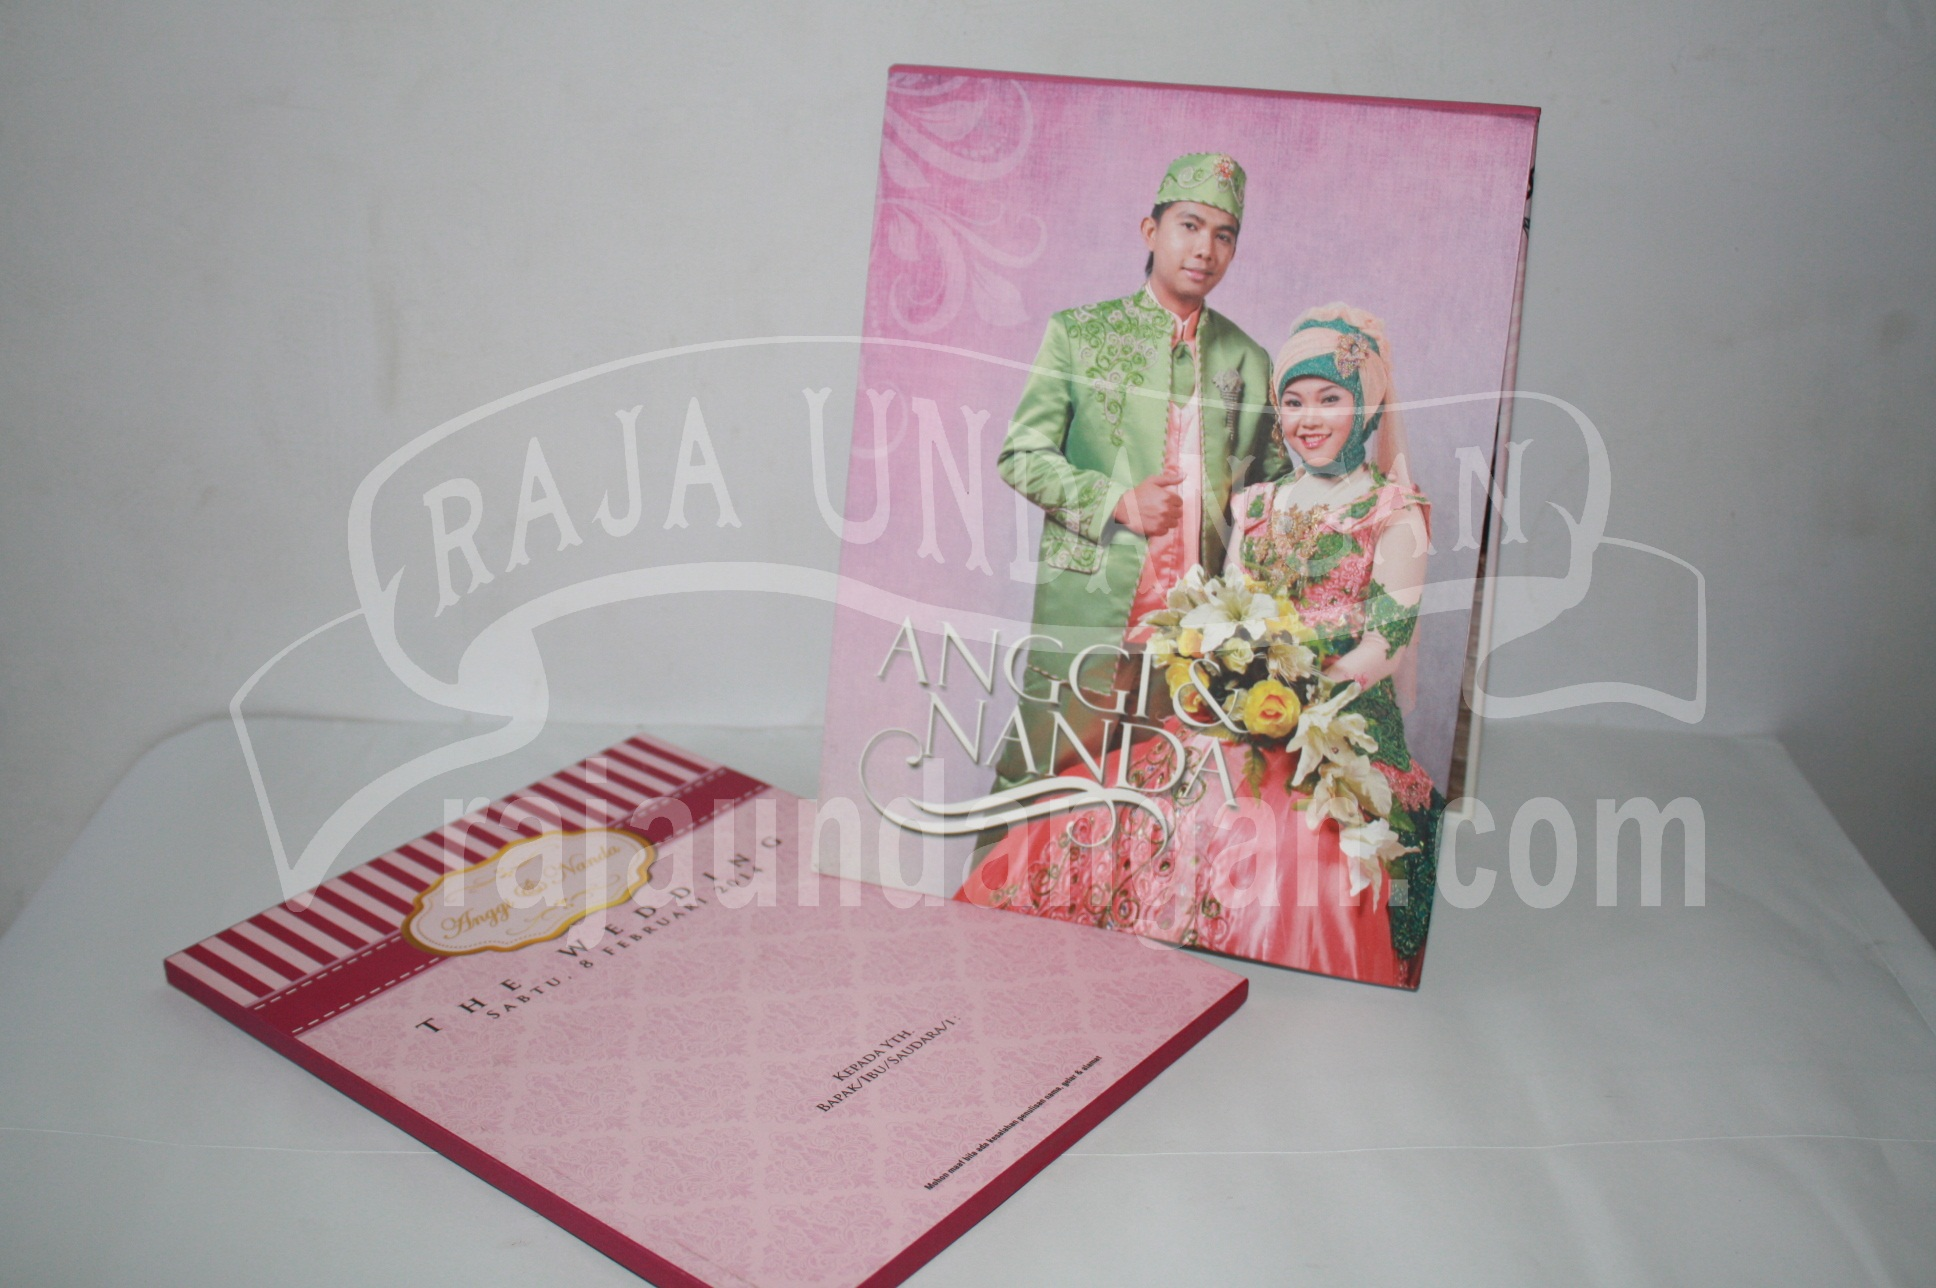 Undangan Pernikahan Hardcover Pop Up Pakai Amplop Anggi dan Nanda EDC 52 - Membuat Wedding Invitations Simple di Dr. Sutomo